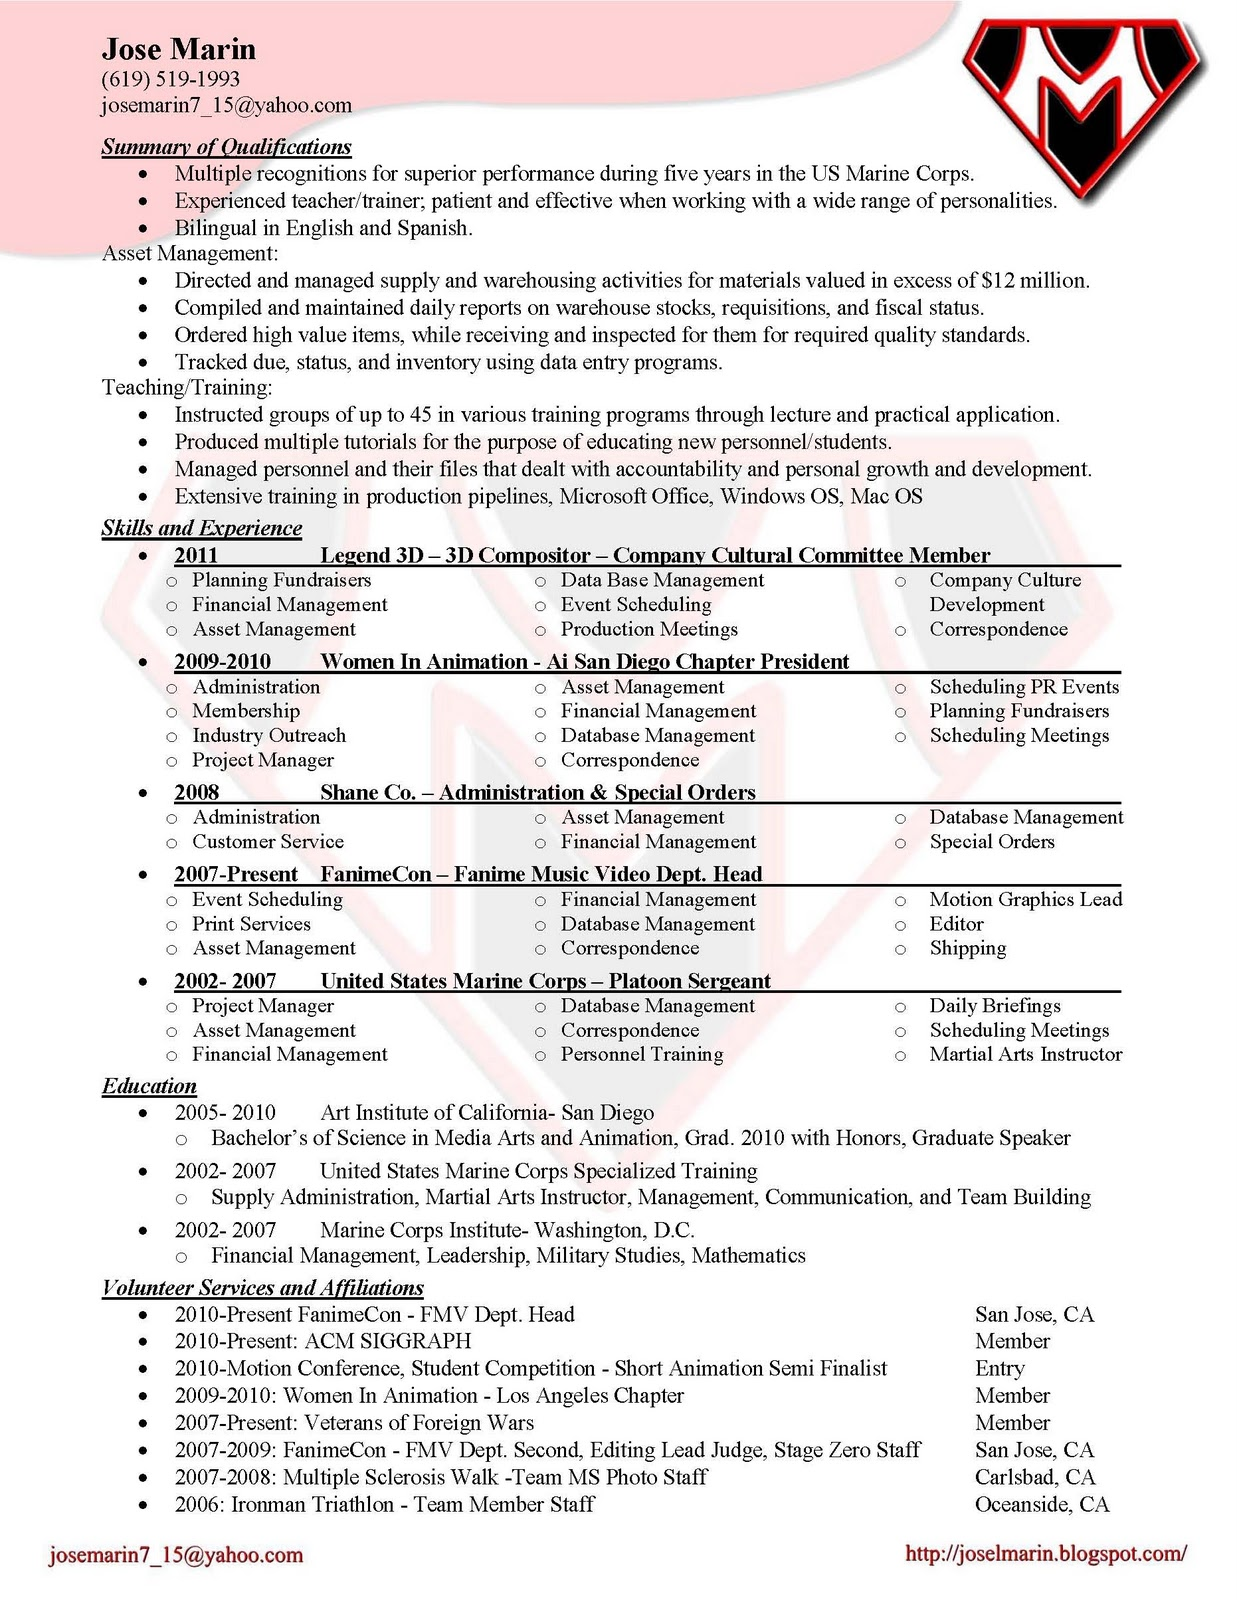 Program coordinator resume samples visualcv resume samples sample chronological resume enviornmental studies resume templat chronological resume sample for college student chronological resume template madrichimfo Choice Image